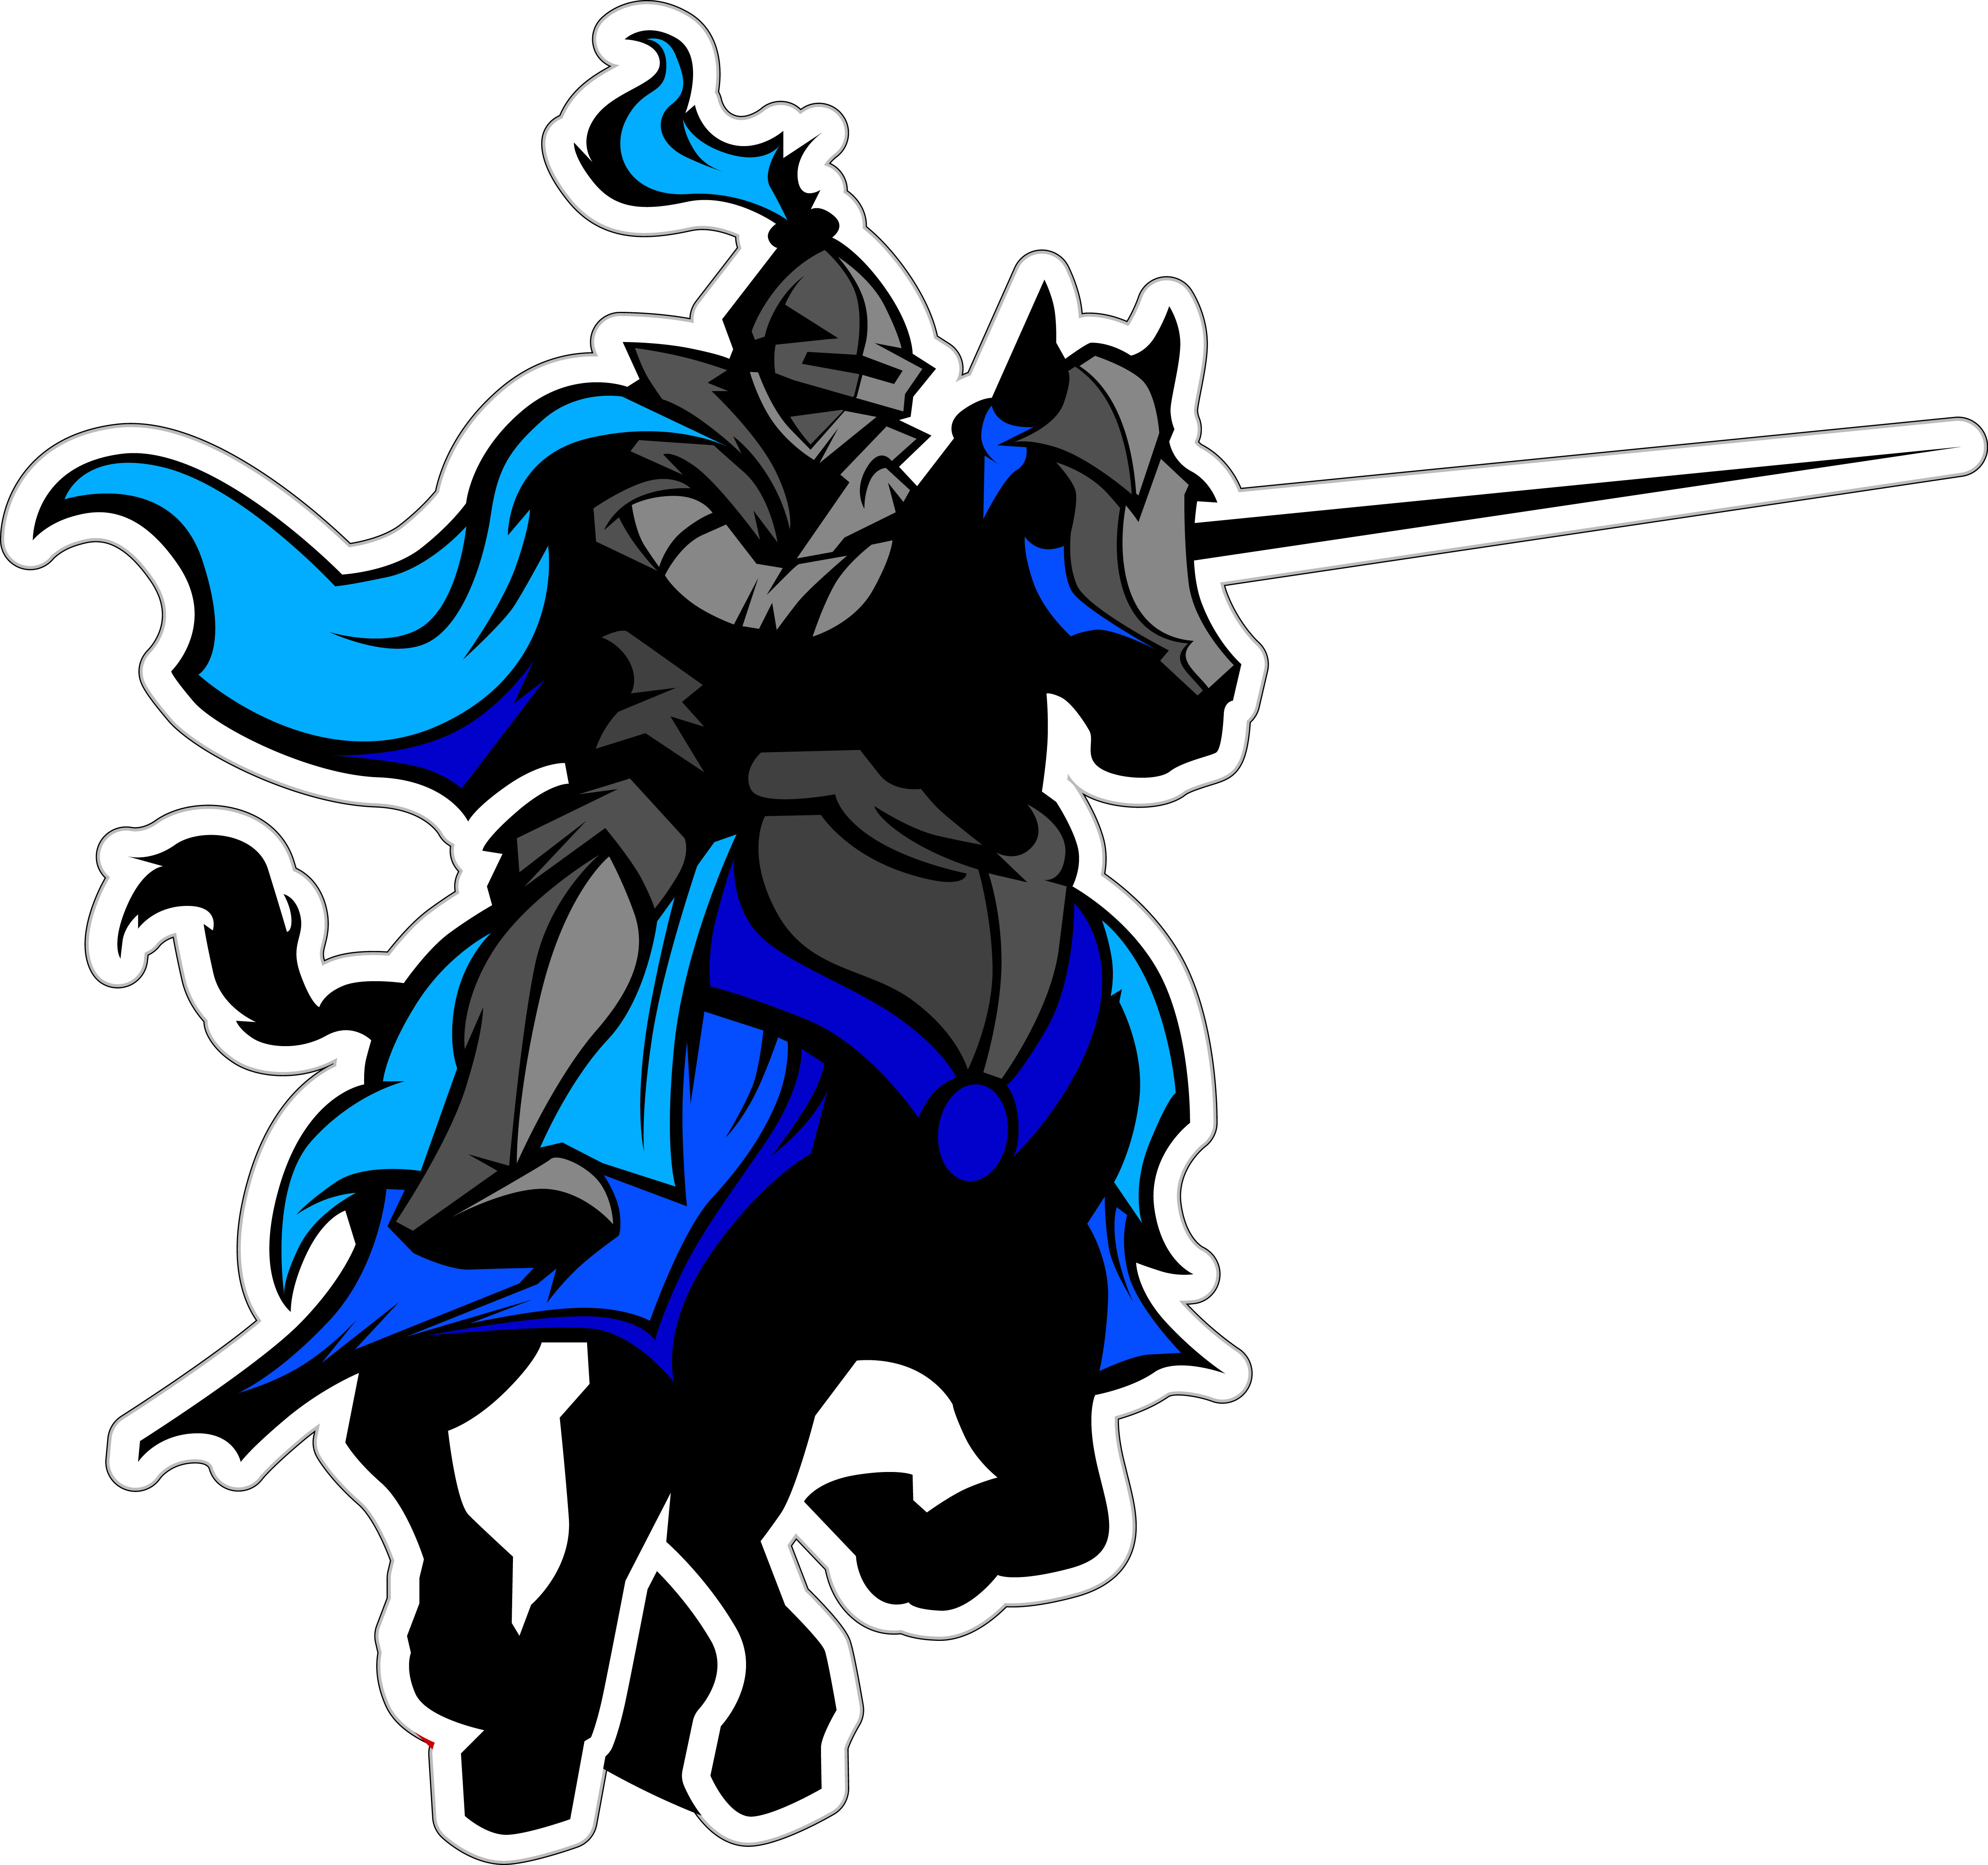 Knights clipart charger. Spring cliparts sports zone